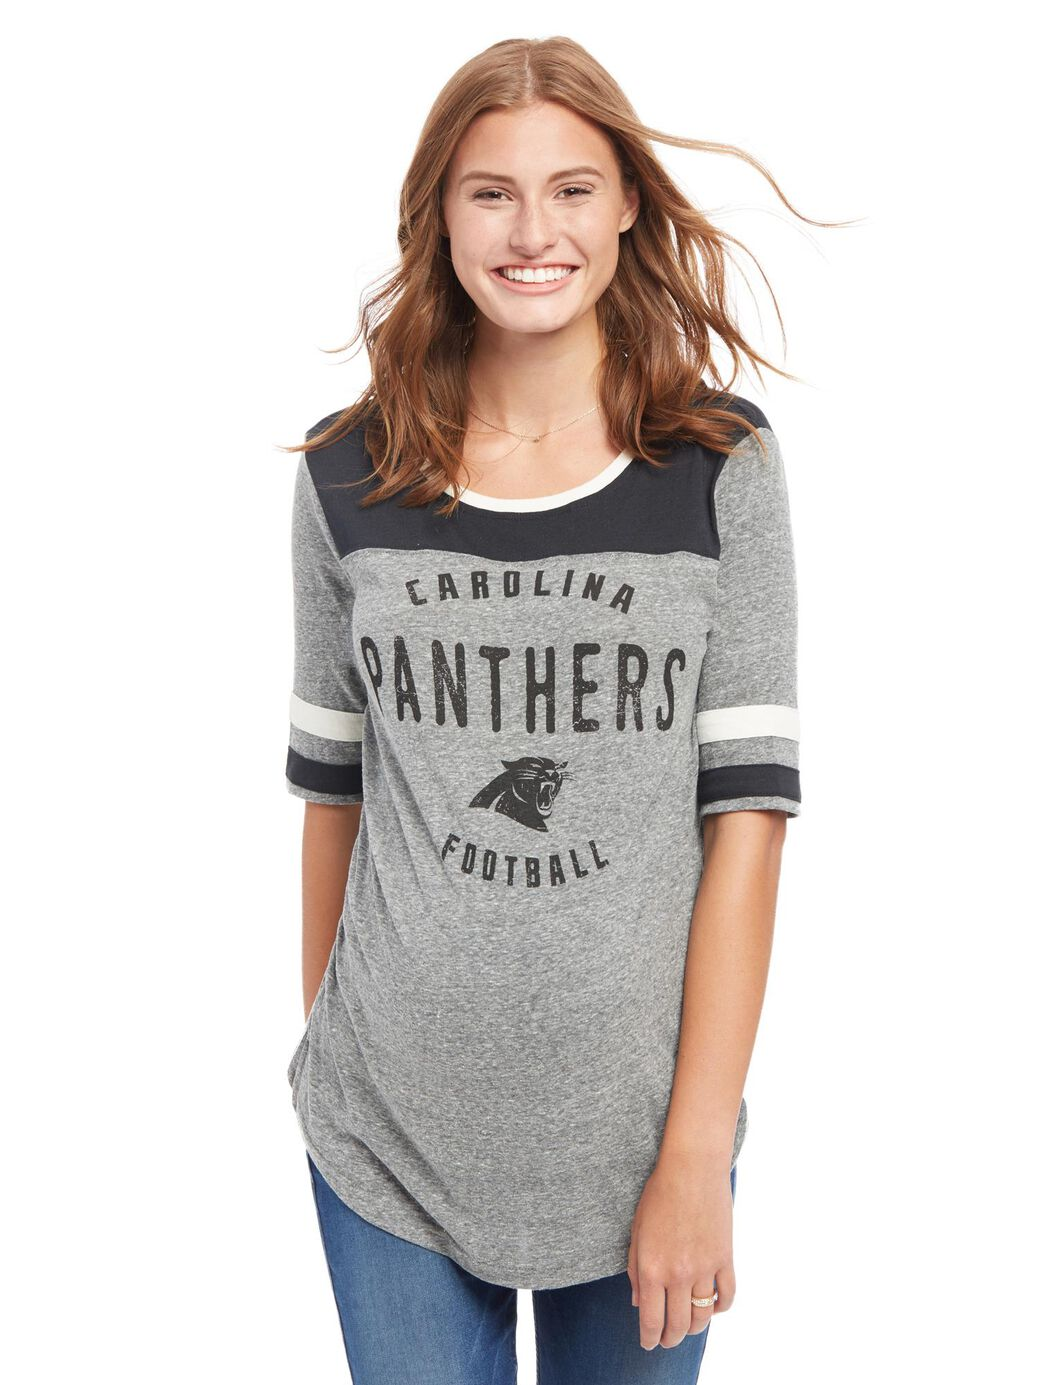 Carolina Panthers NFL Elbow Sleeve Maternity Graphic Tee at Motherhood Maternity in Victor, NY | Tuggl